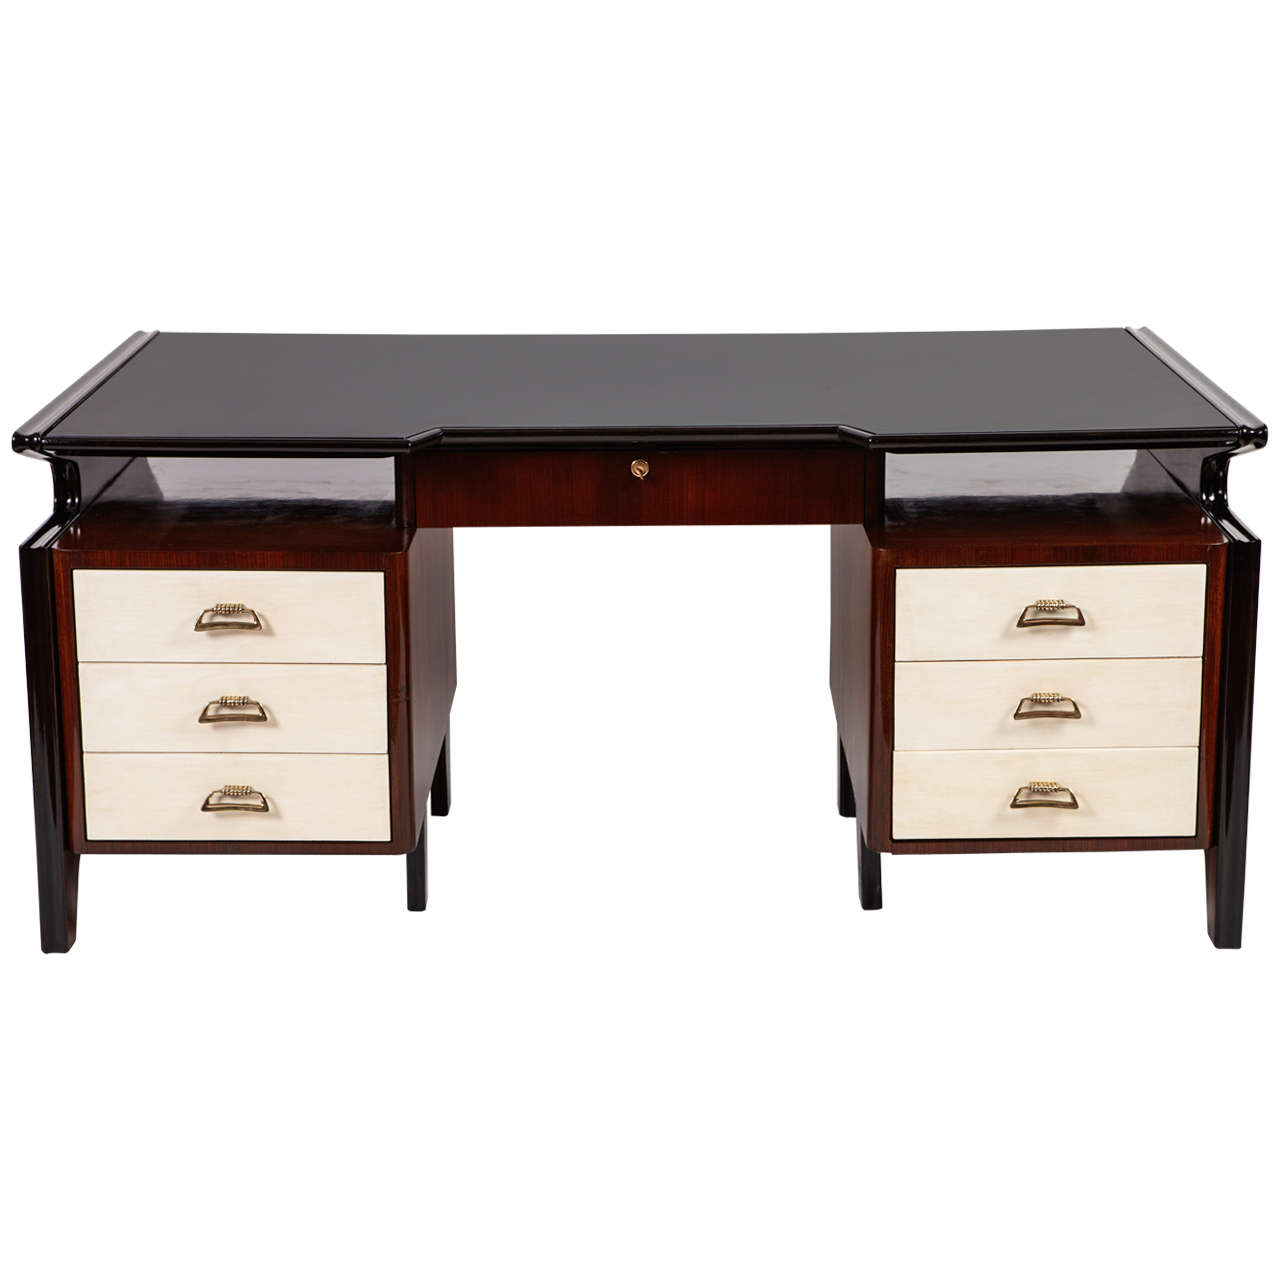 Important Executive Rosewood Desk Attributed to Carlo de Carli, 1950